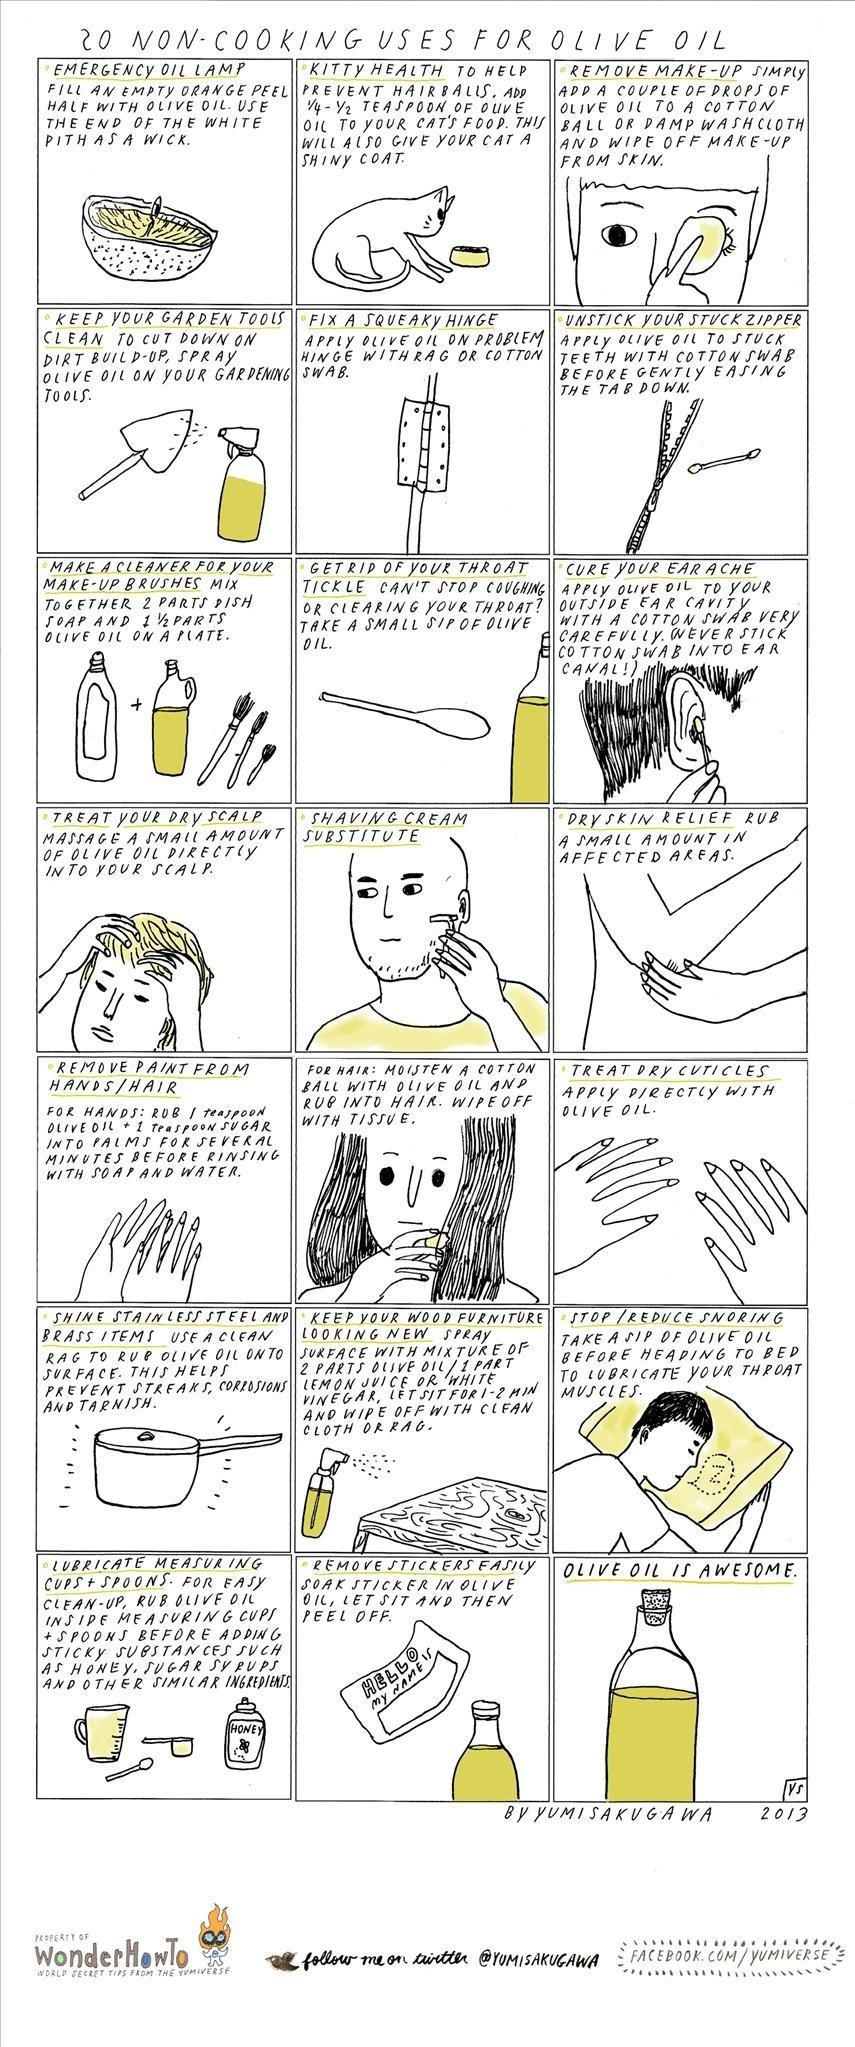 20 Non-Cooking Uses for Olive Oil